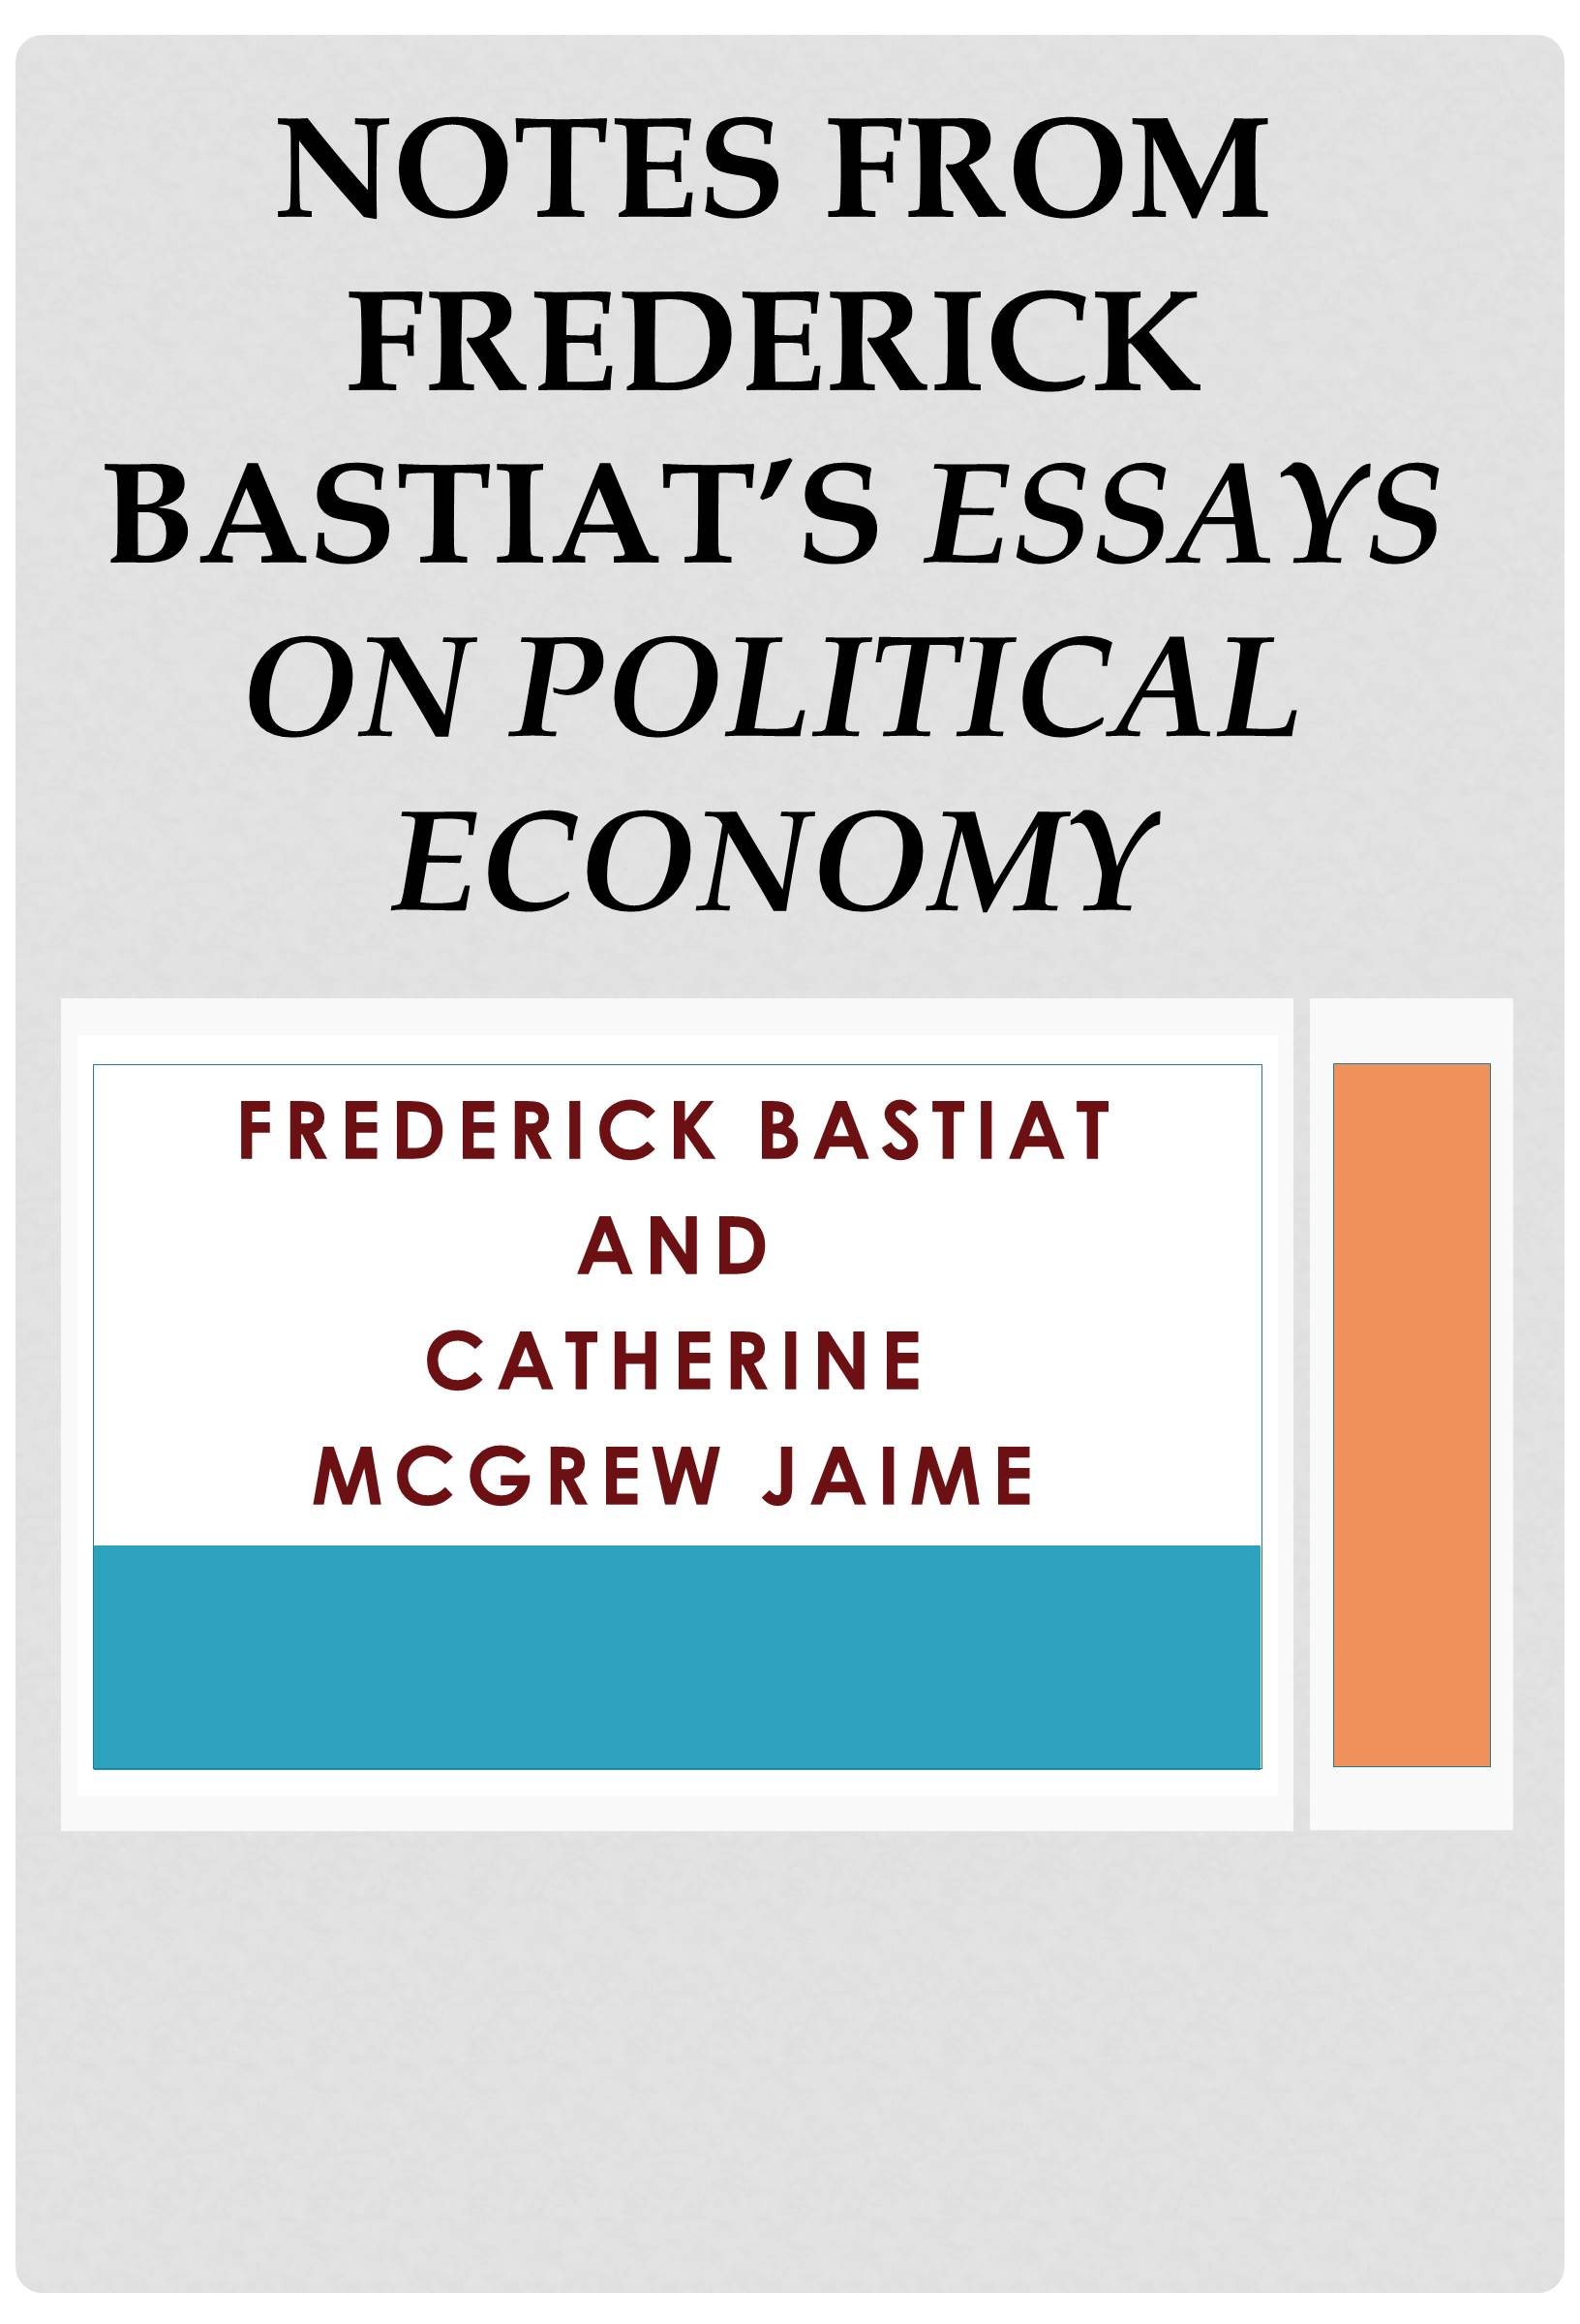 """frederic bastiat essays on political economy Online library of liberty """"bastiat and political economy"""" selected essays on political economy, trans seymour cain."""